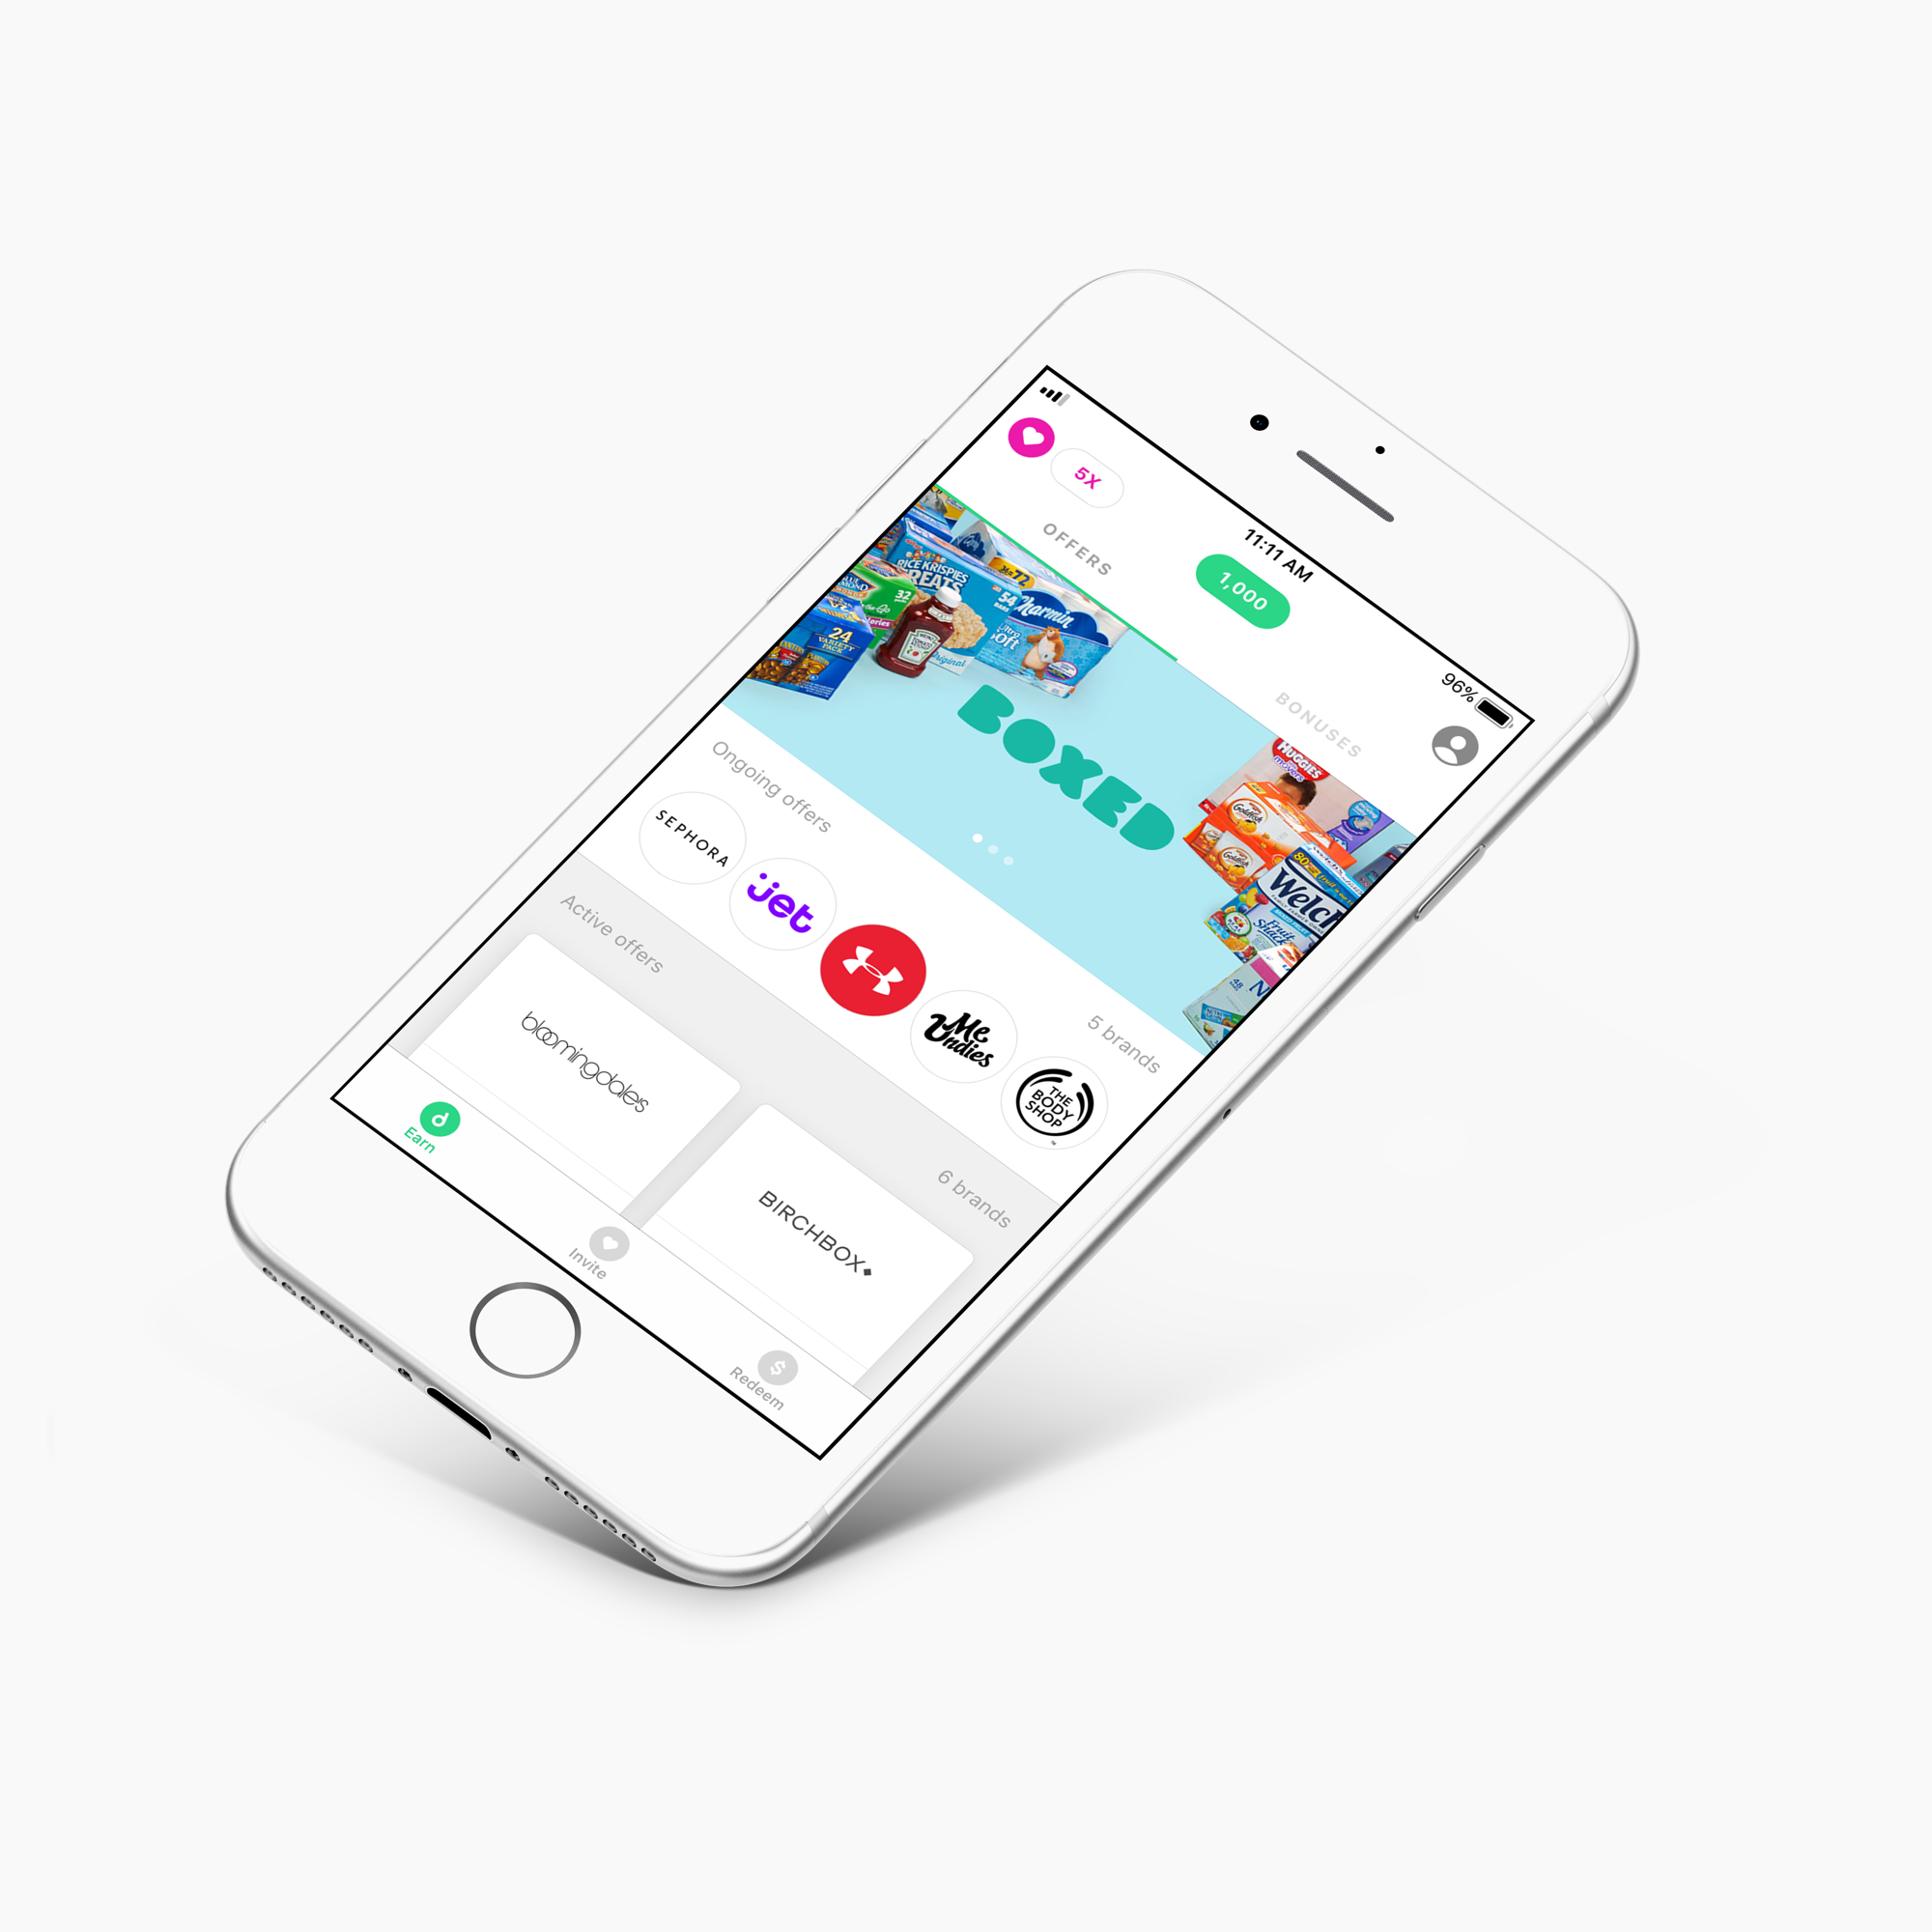 """App Review: """"Drop"""" Aims To Help Users Earn Free Gift Cards"""